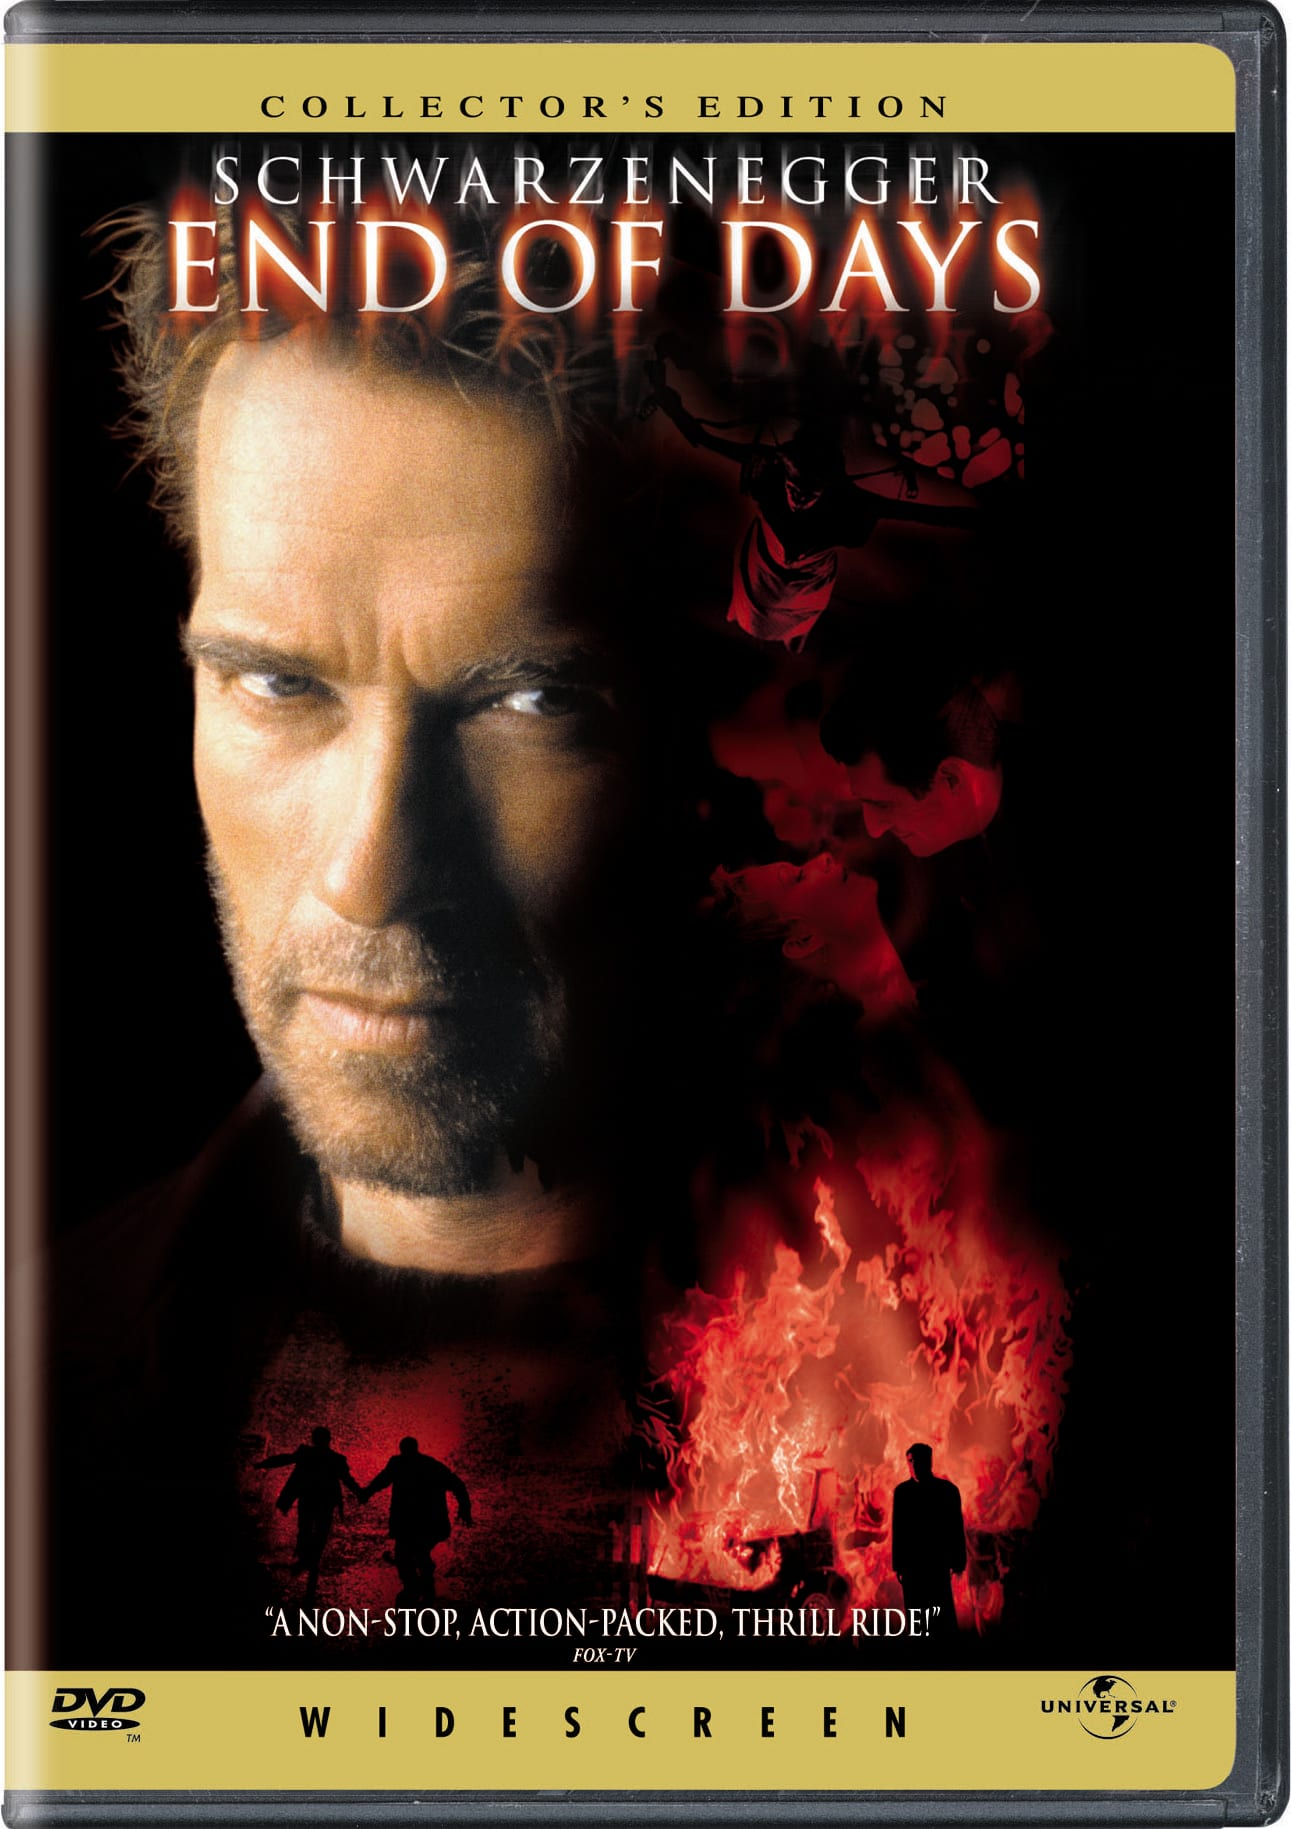 End of Days (Collector's Edition) [DVD]